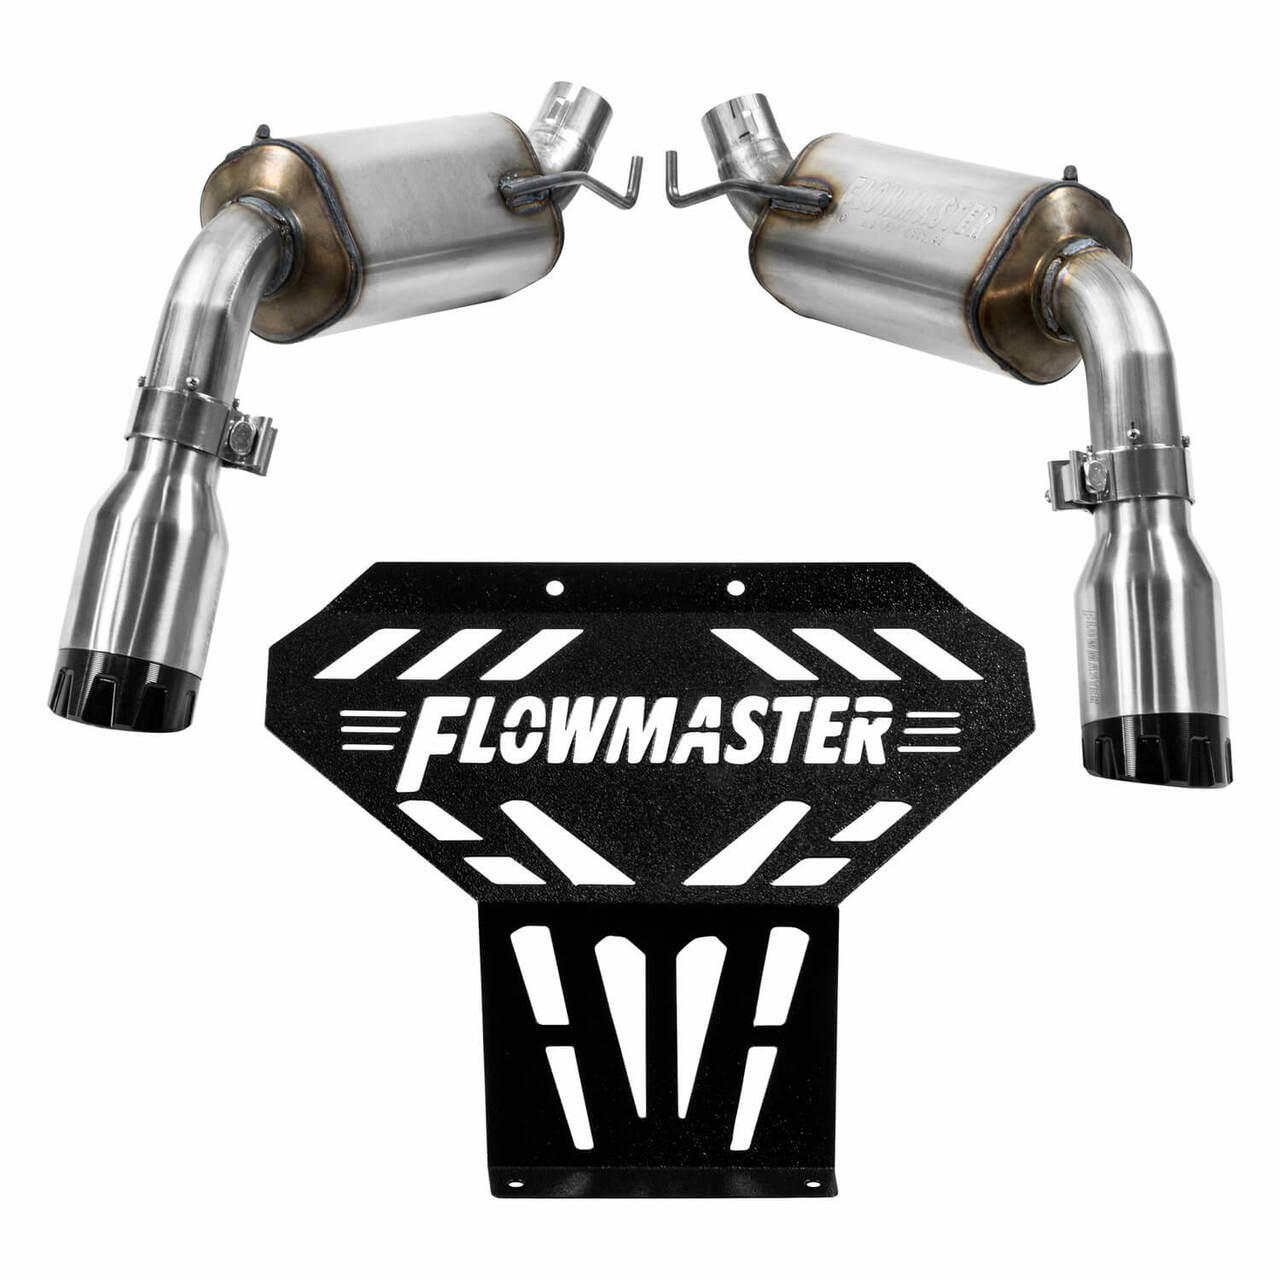 xdr off road flowmaster can am maverick performance exhaust kit 7202